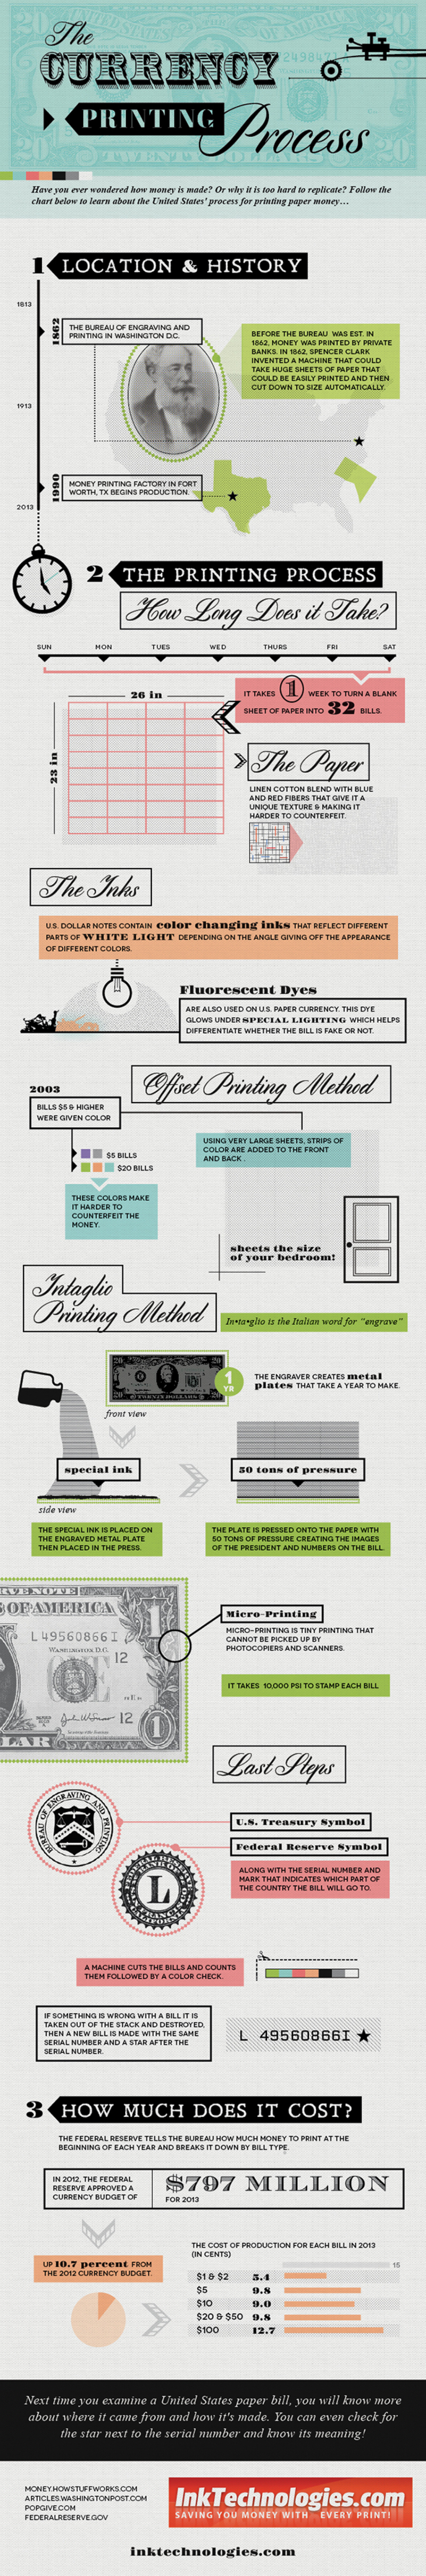 The Currency Printing Process Infographic